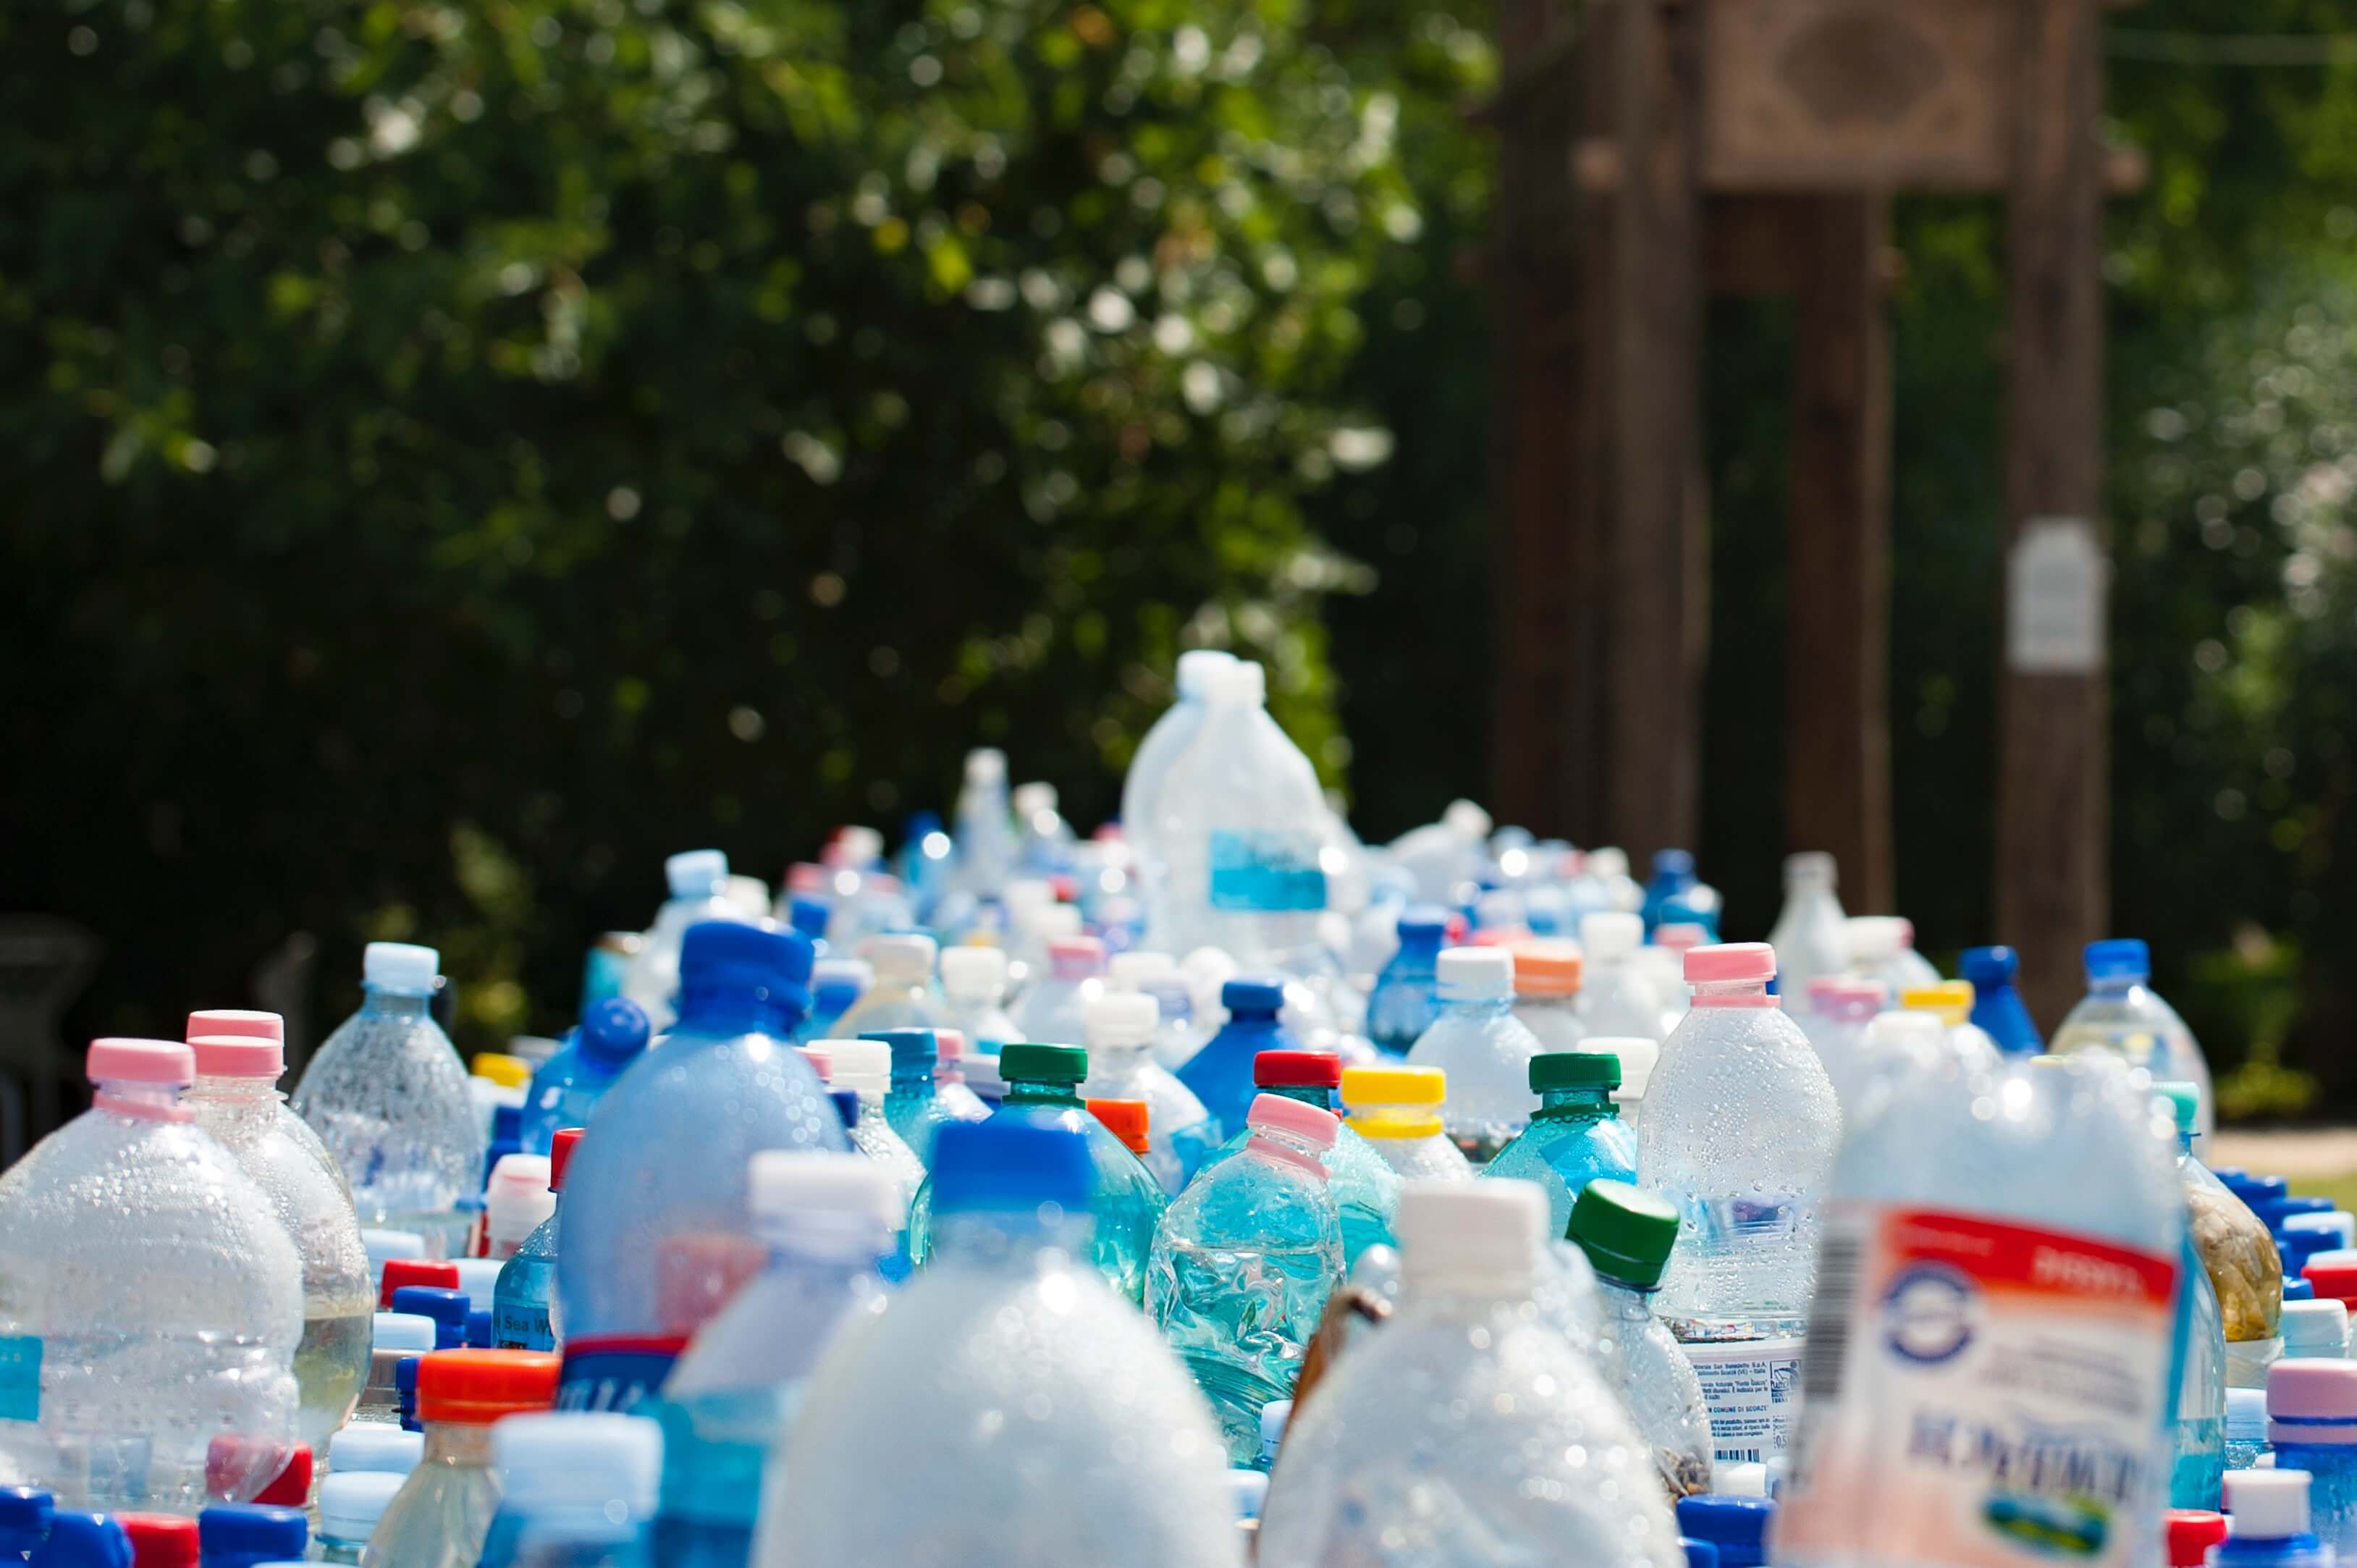 Image of several different types of plastic bottles lined up